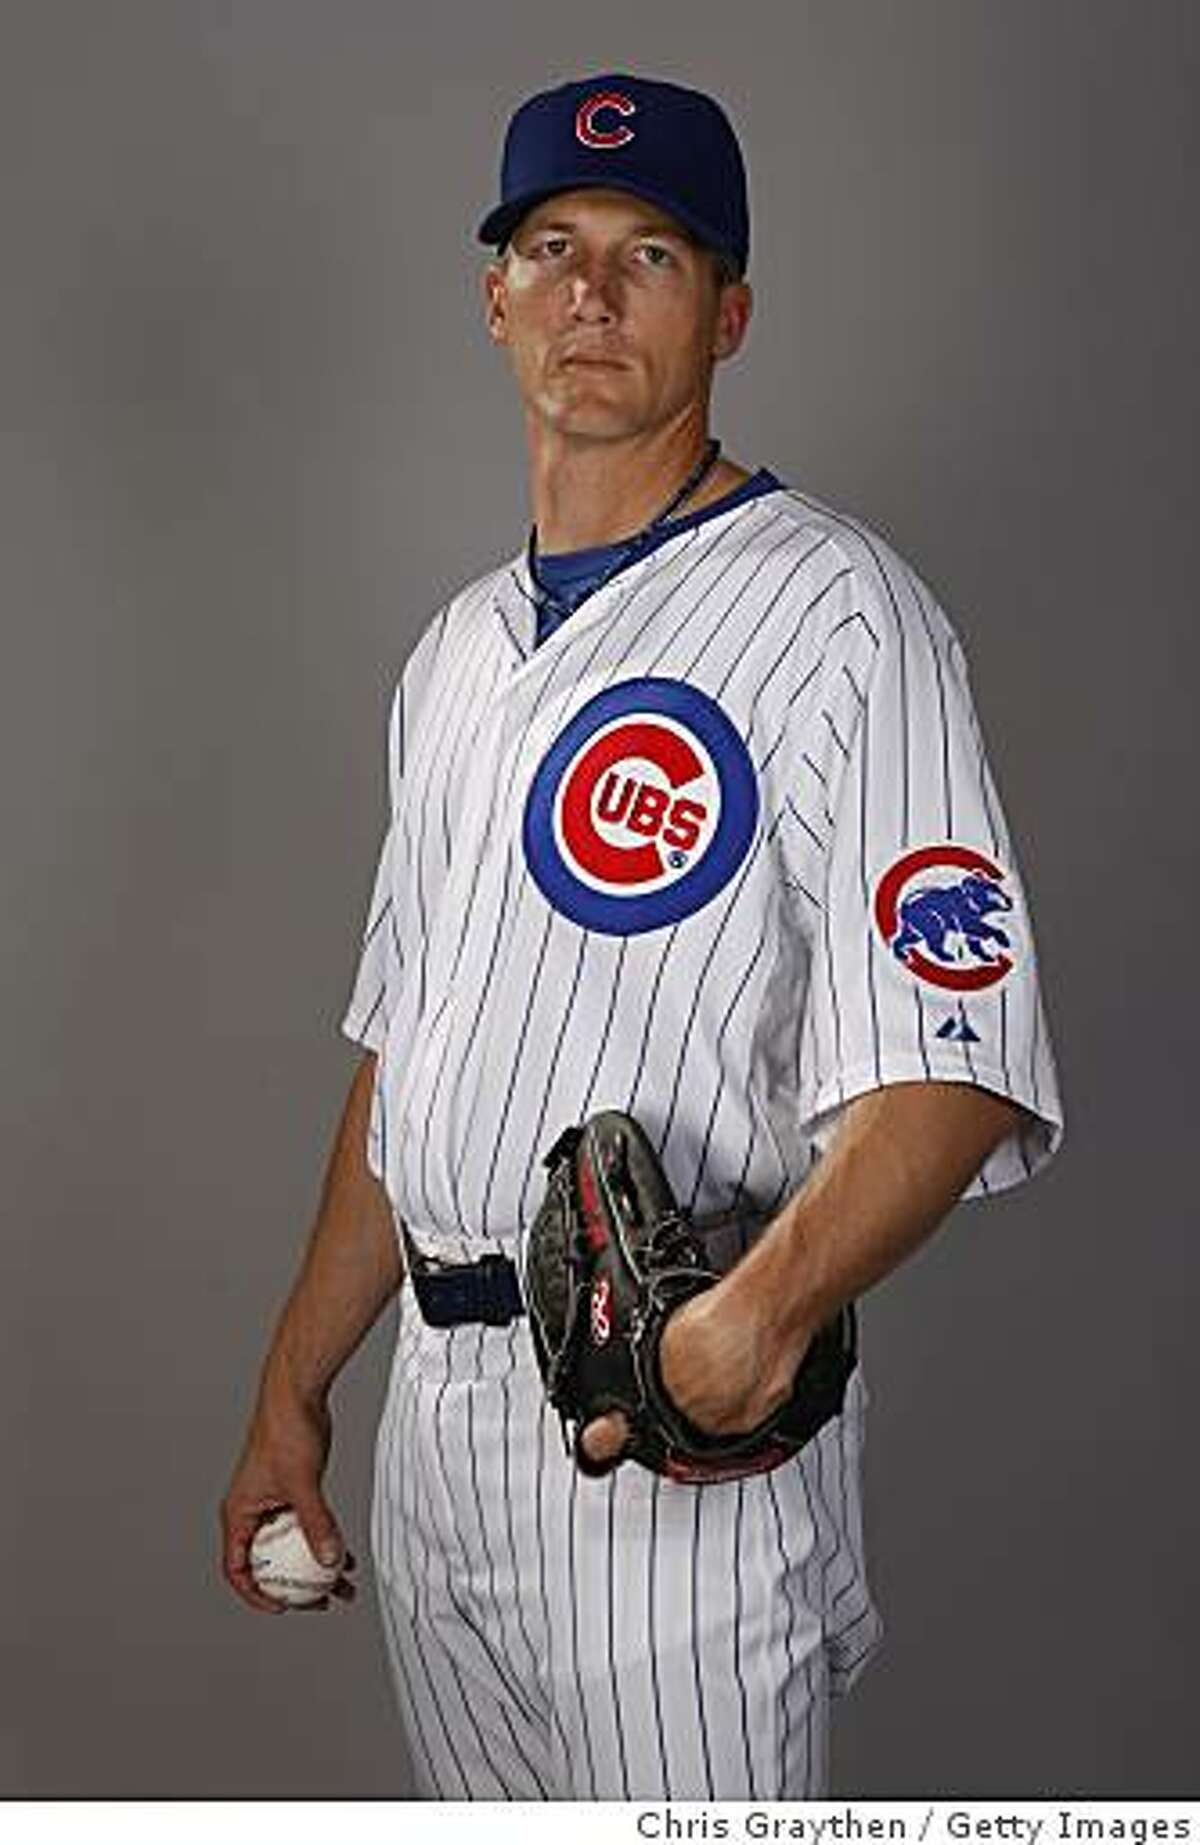 MESA, AZ - FEBRUARY 25: Bob Howry #62 of the Chicago Cubs poses for a photo during Spring Training Photo Day on February 25, 2008 in Mesa, Arizona. (Photo by Chris Graythen/Getty Images)